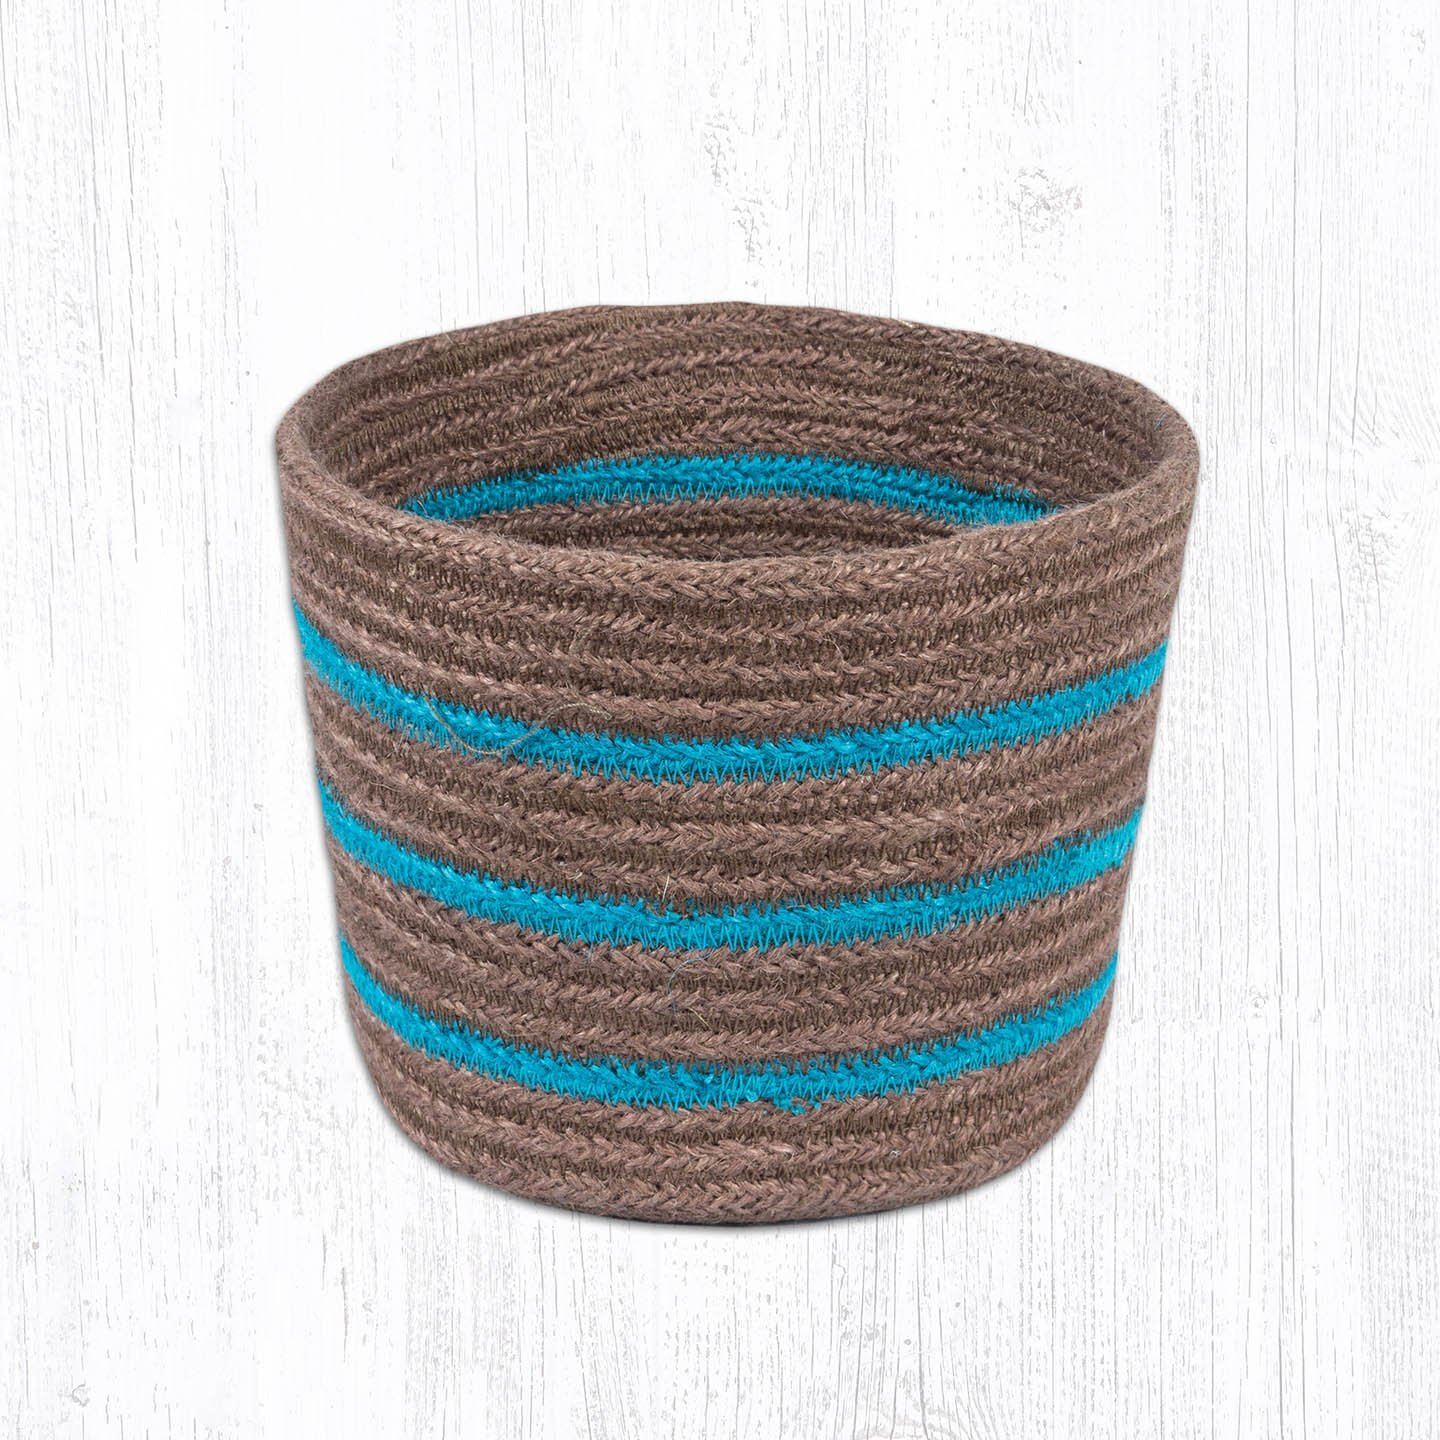 Turquoise & Brown Round Basket 6 in. by 7 in.